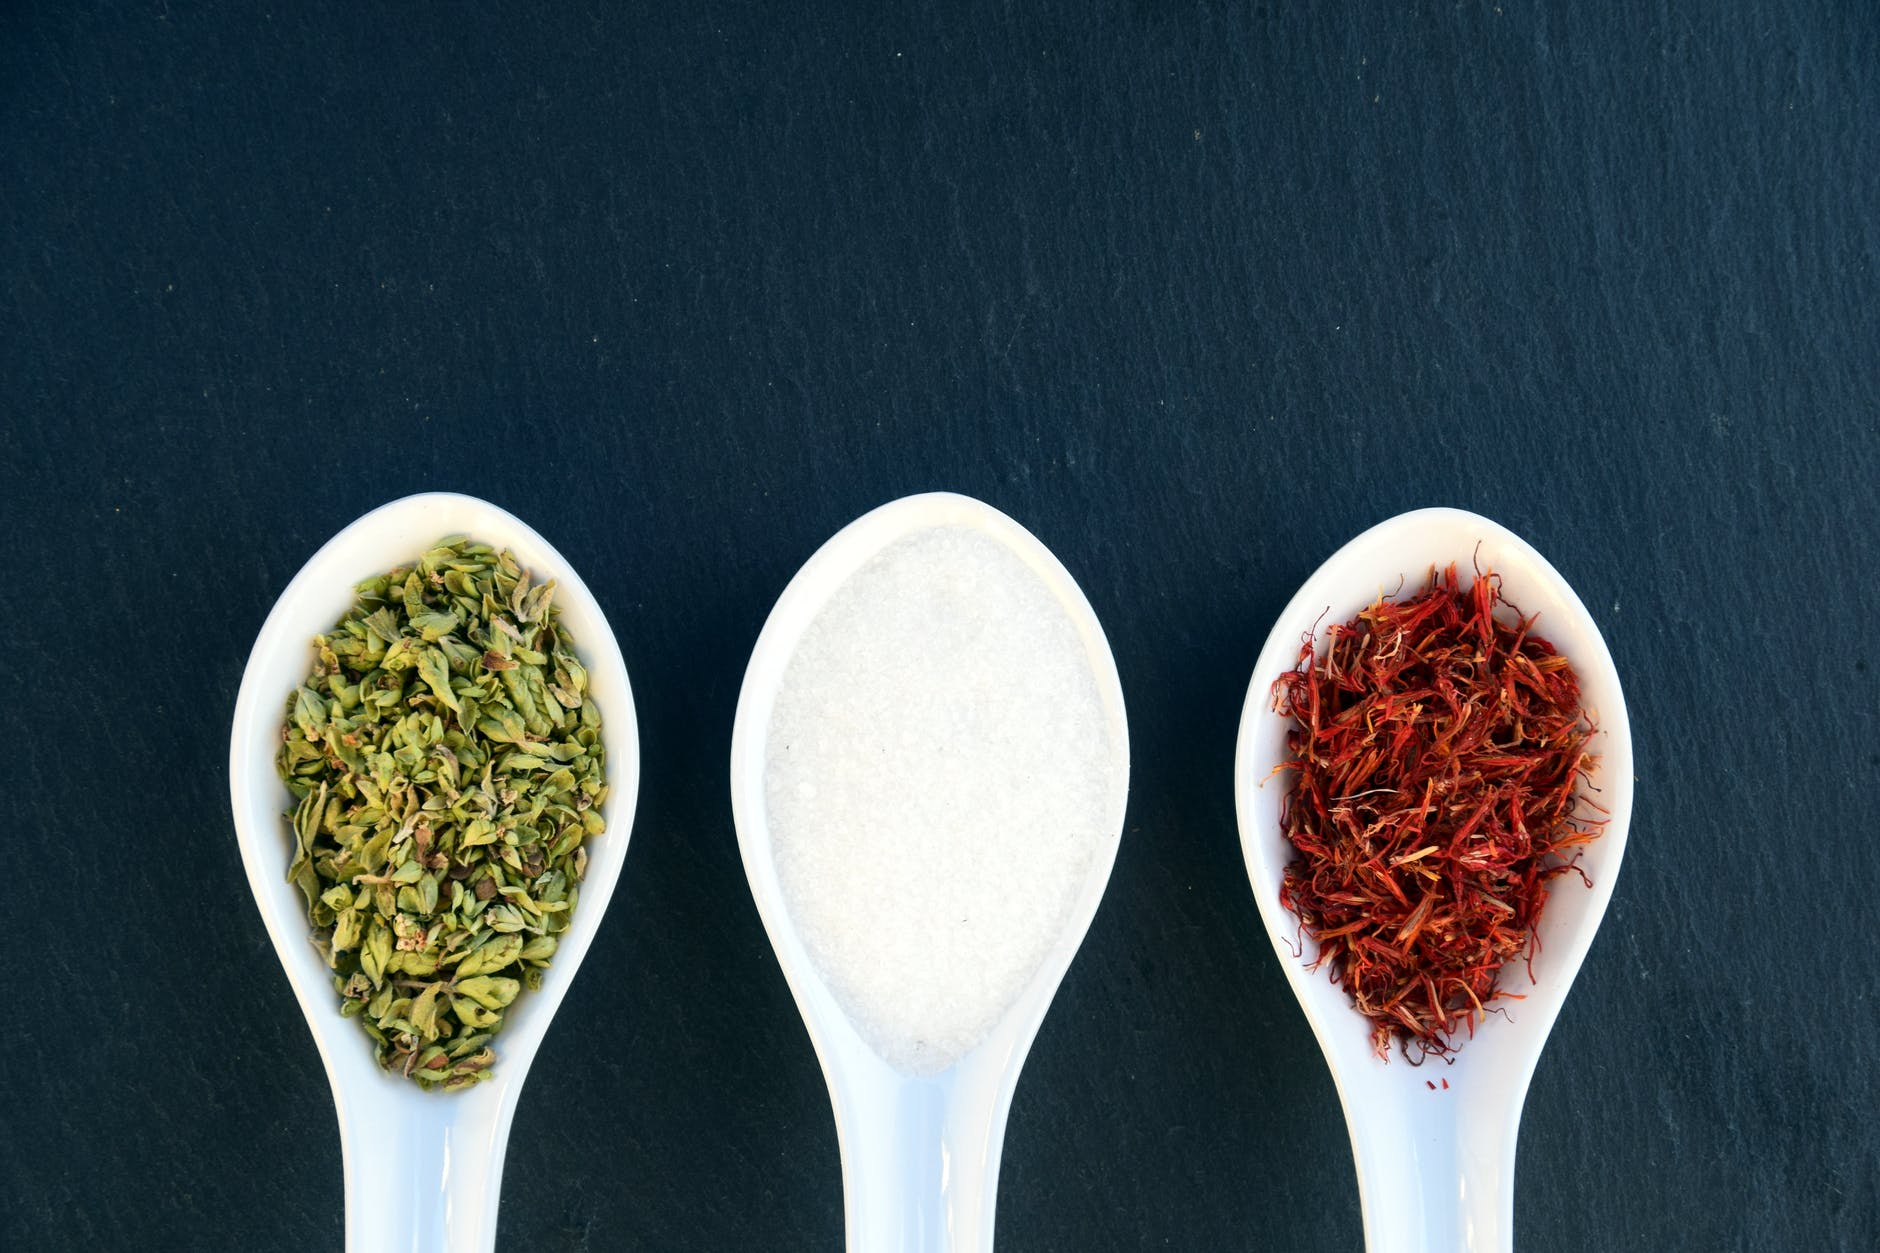 Saffron |The 10 Best Garden Spices You Need To Grow Now